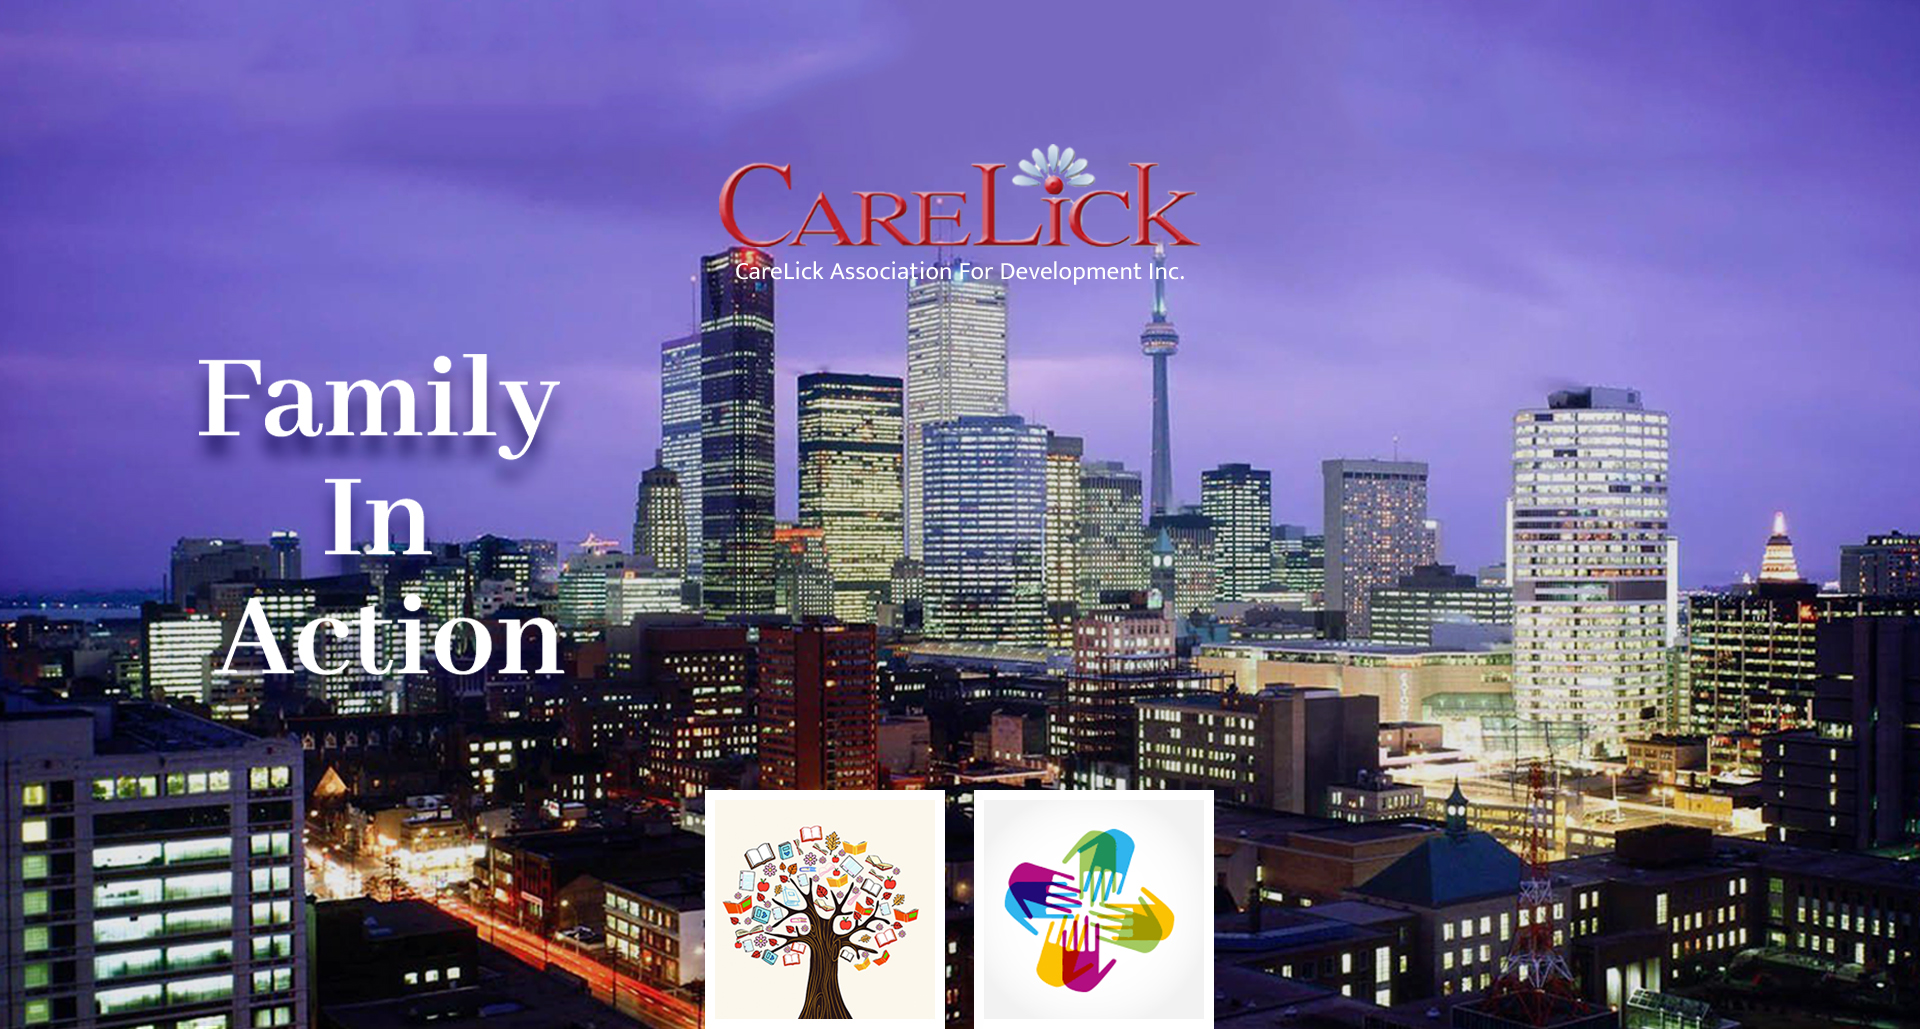 carelick banner